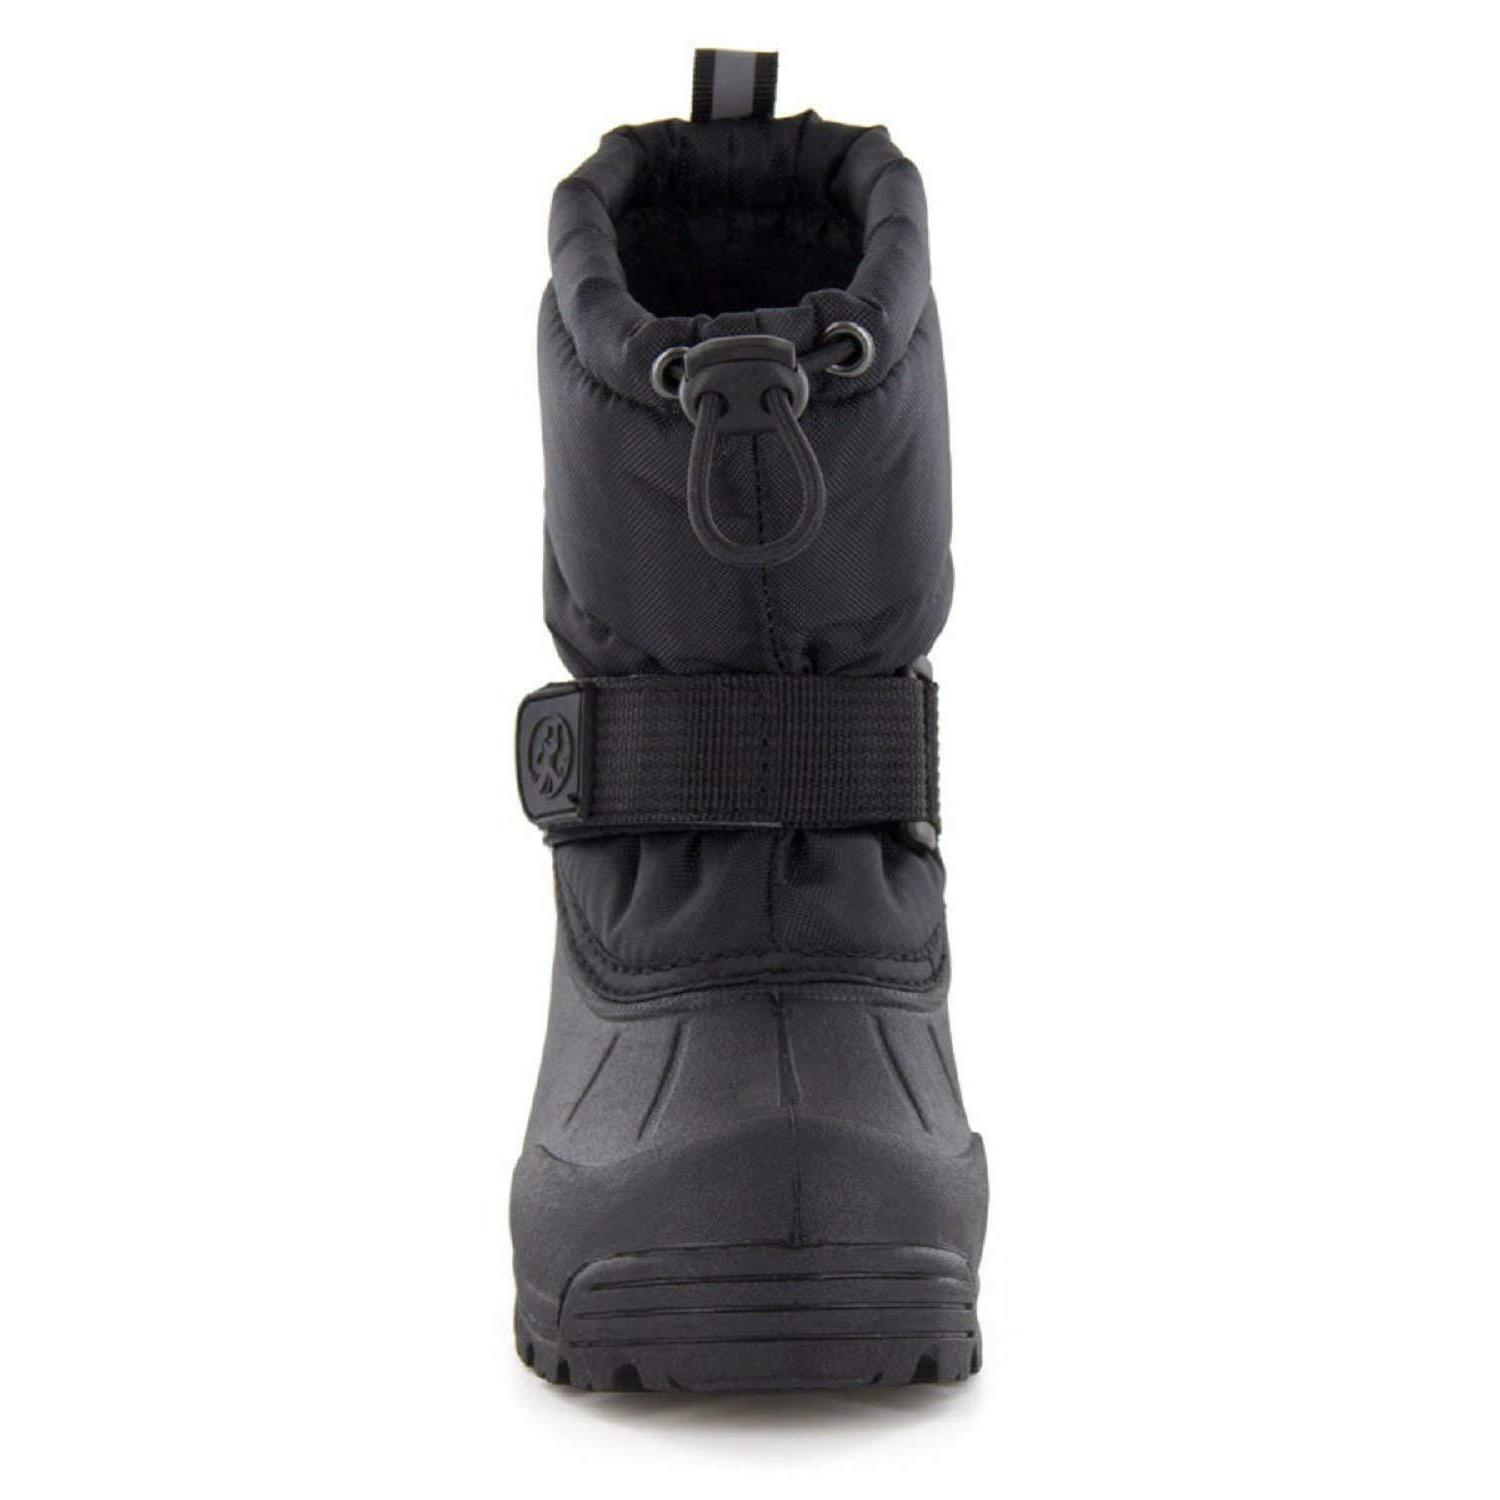 Northside FROSTY Black 200G Snow Boots